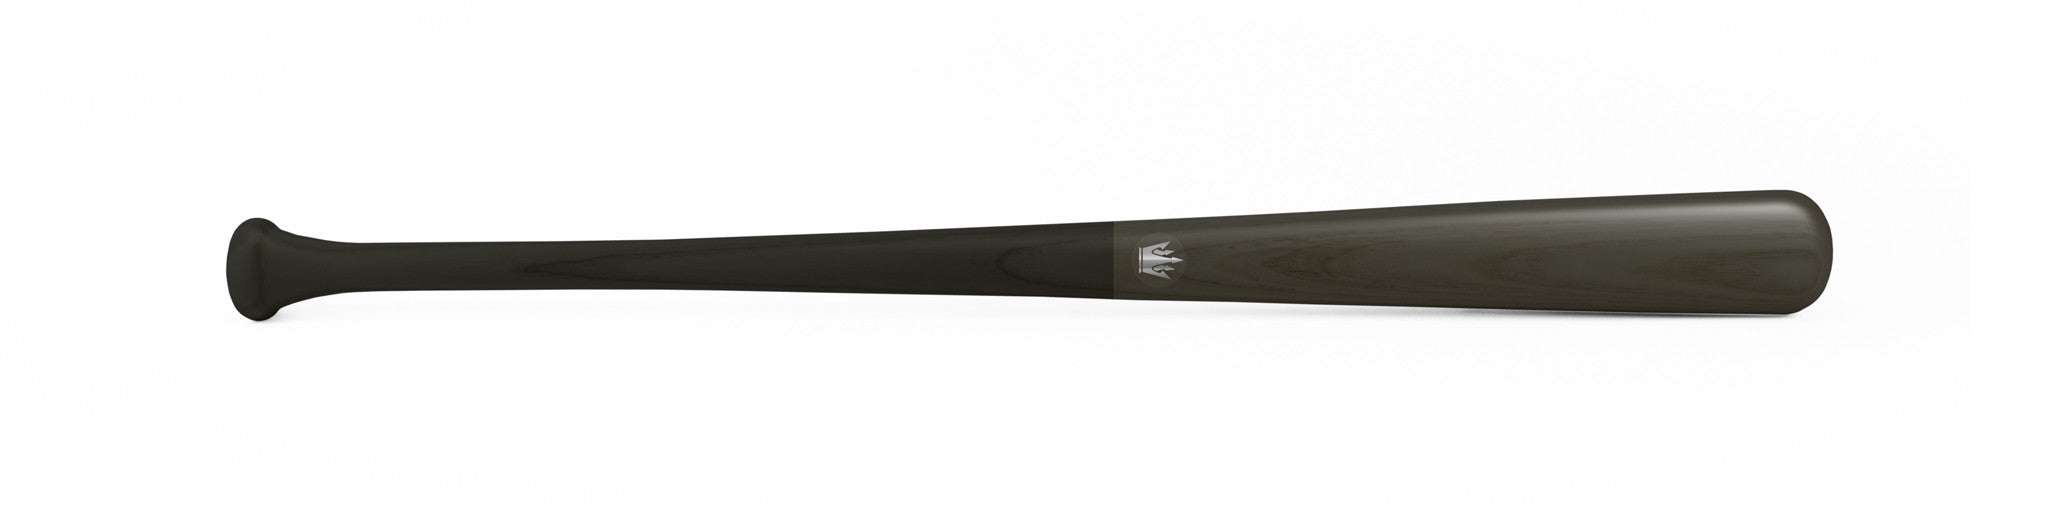 Wood bat - Ash model Y110 Black Charcoal - 25